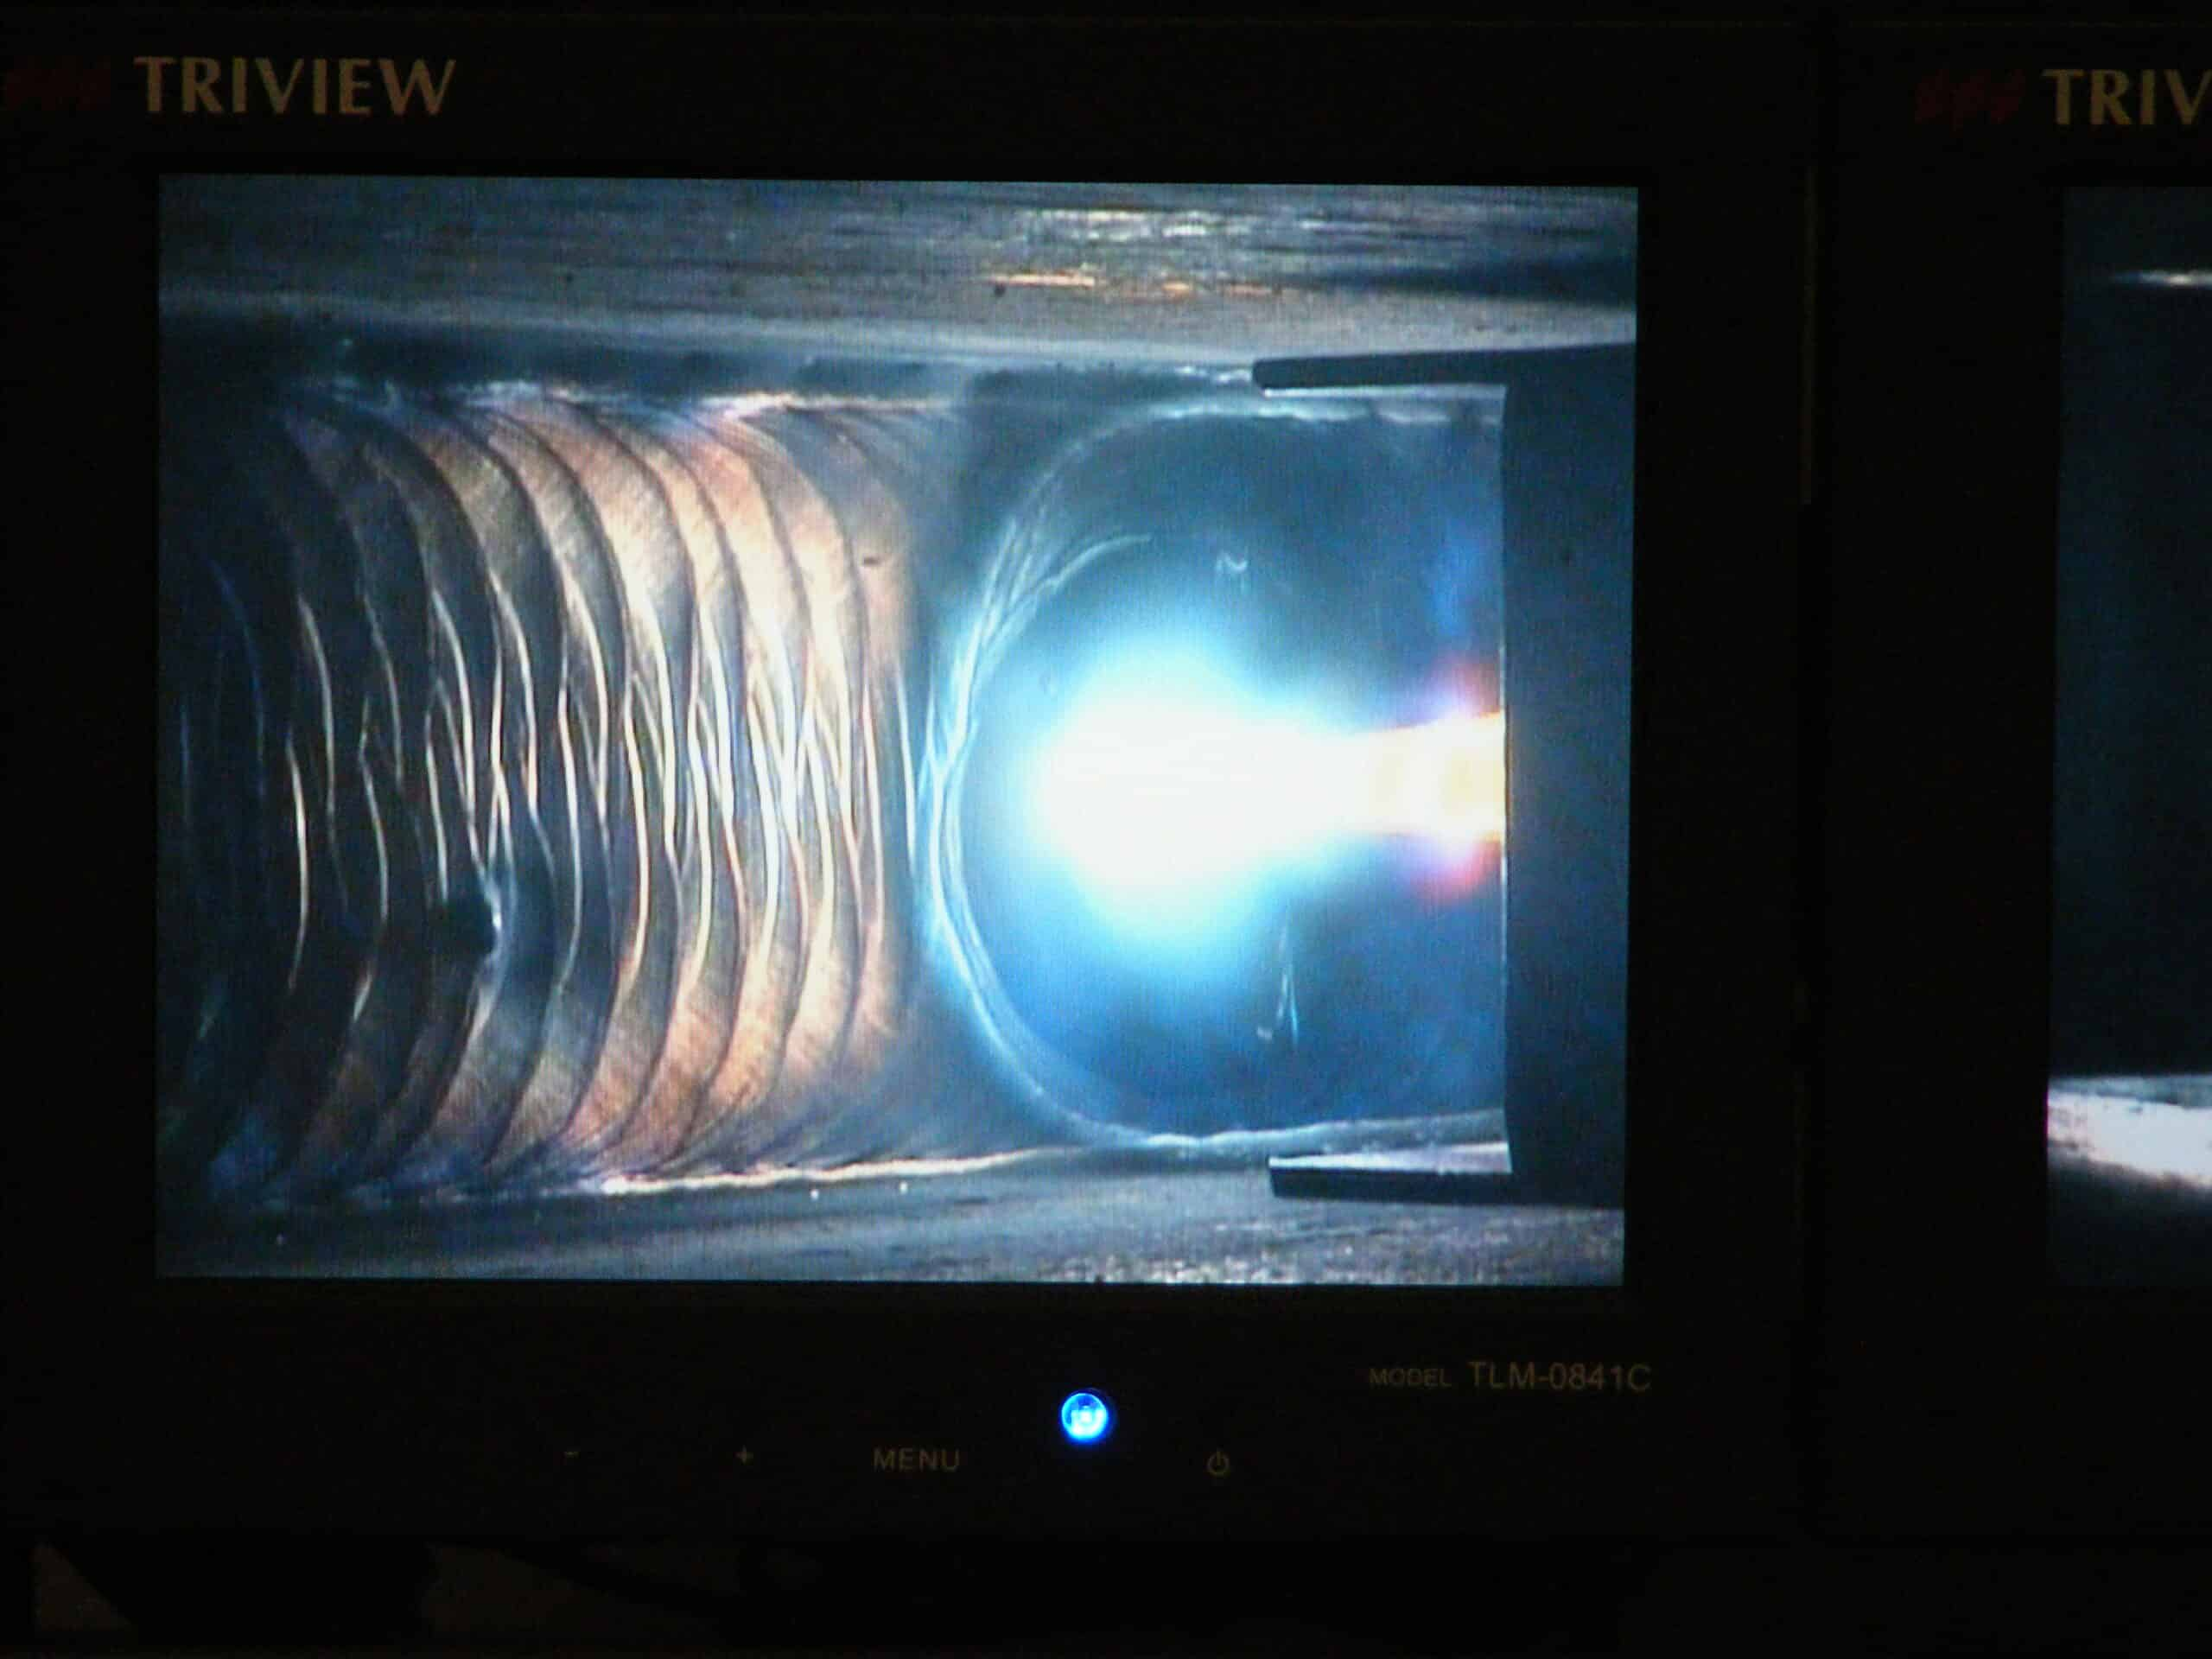 Computer vision systems can have trouble differentiating the weld puddle and arc from the surrounding metal.